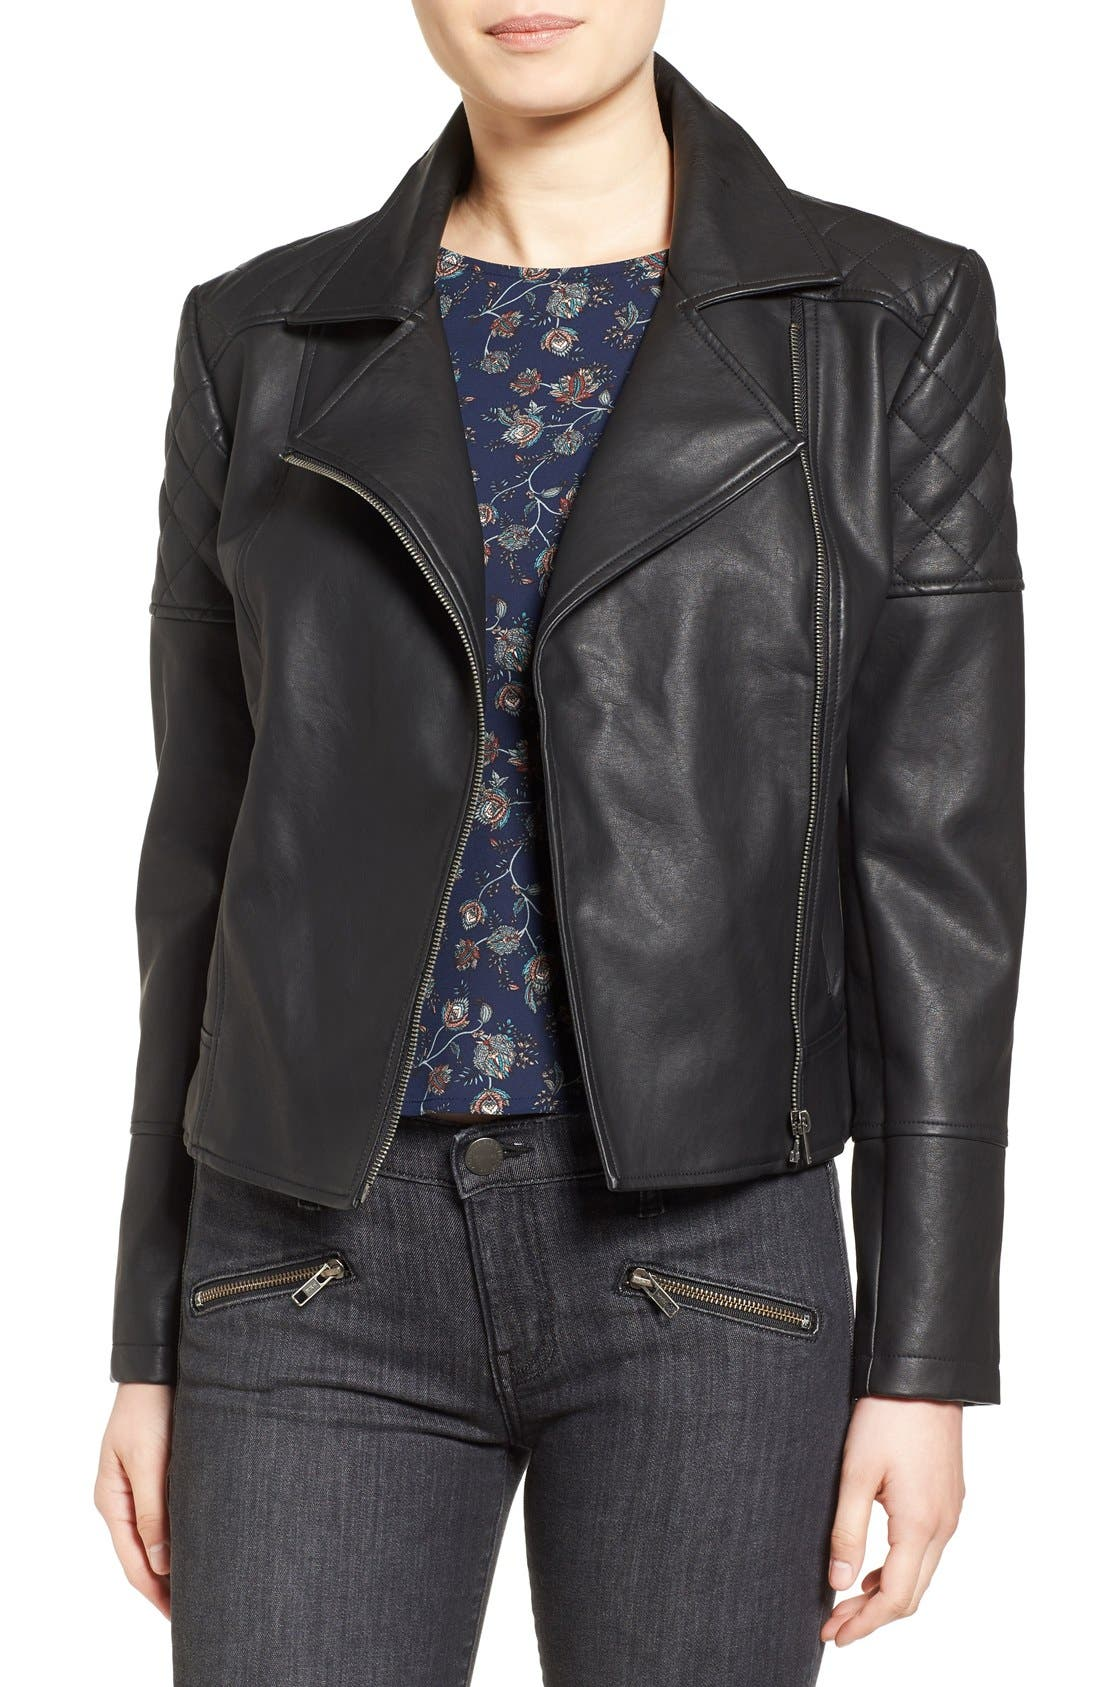 CUPCAKES AND CASHMERE, 'Breck' Faux Leather Moto Jacket, Main thumbnail 1, color, 001